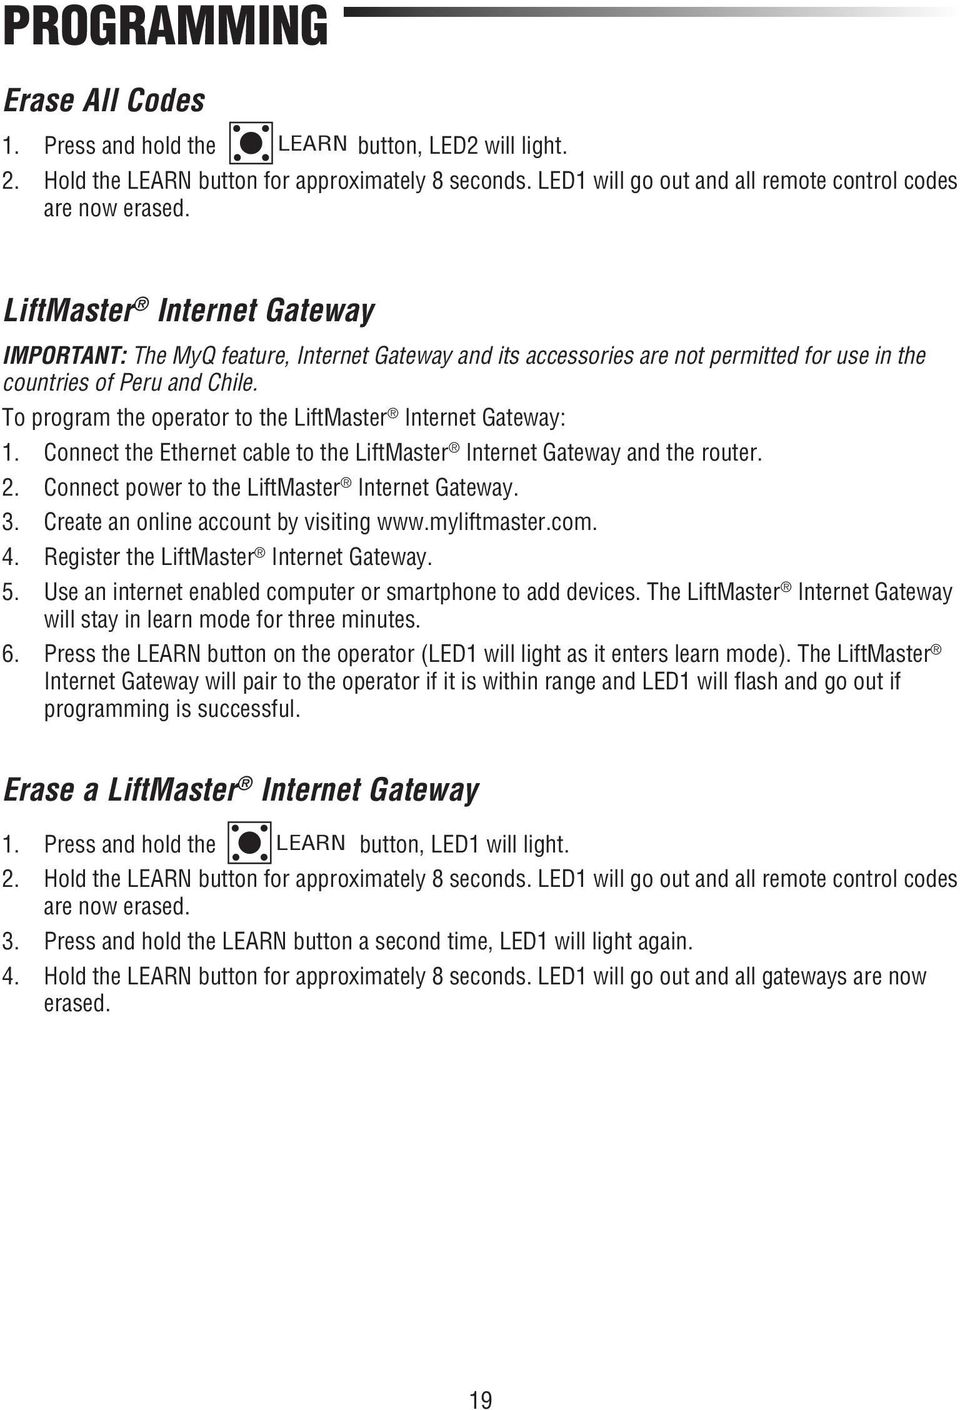 To program the operator to the LiftMaster Internet Gateway: 1. Connect the Ethernet cable to the LiftMaster Internet Gateway and the router. 2. Connect power to the LiftMaster Internet Gateway. 3.